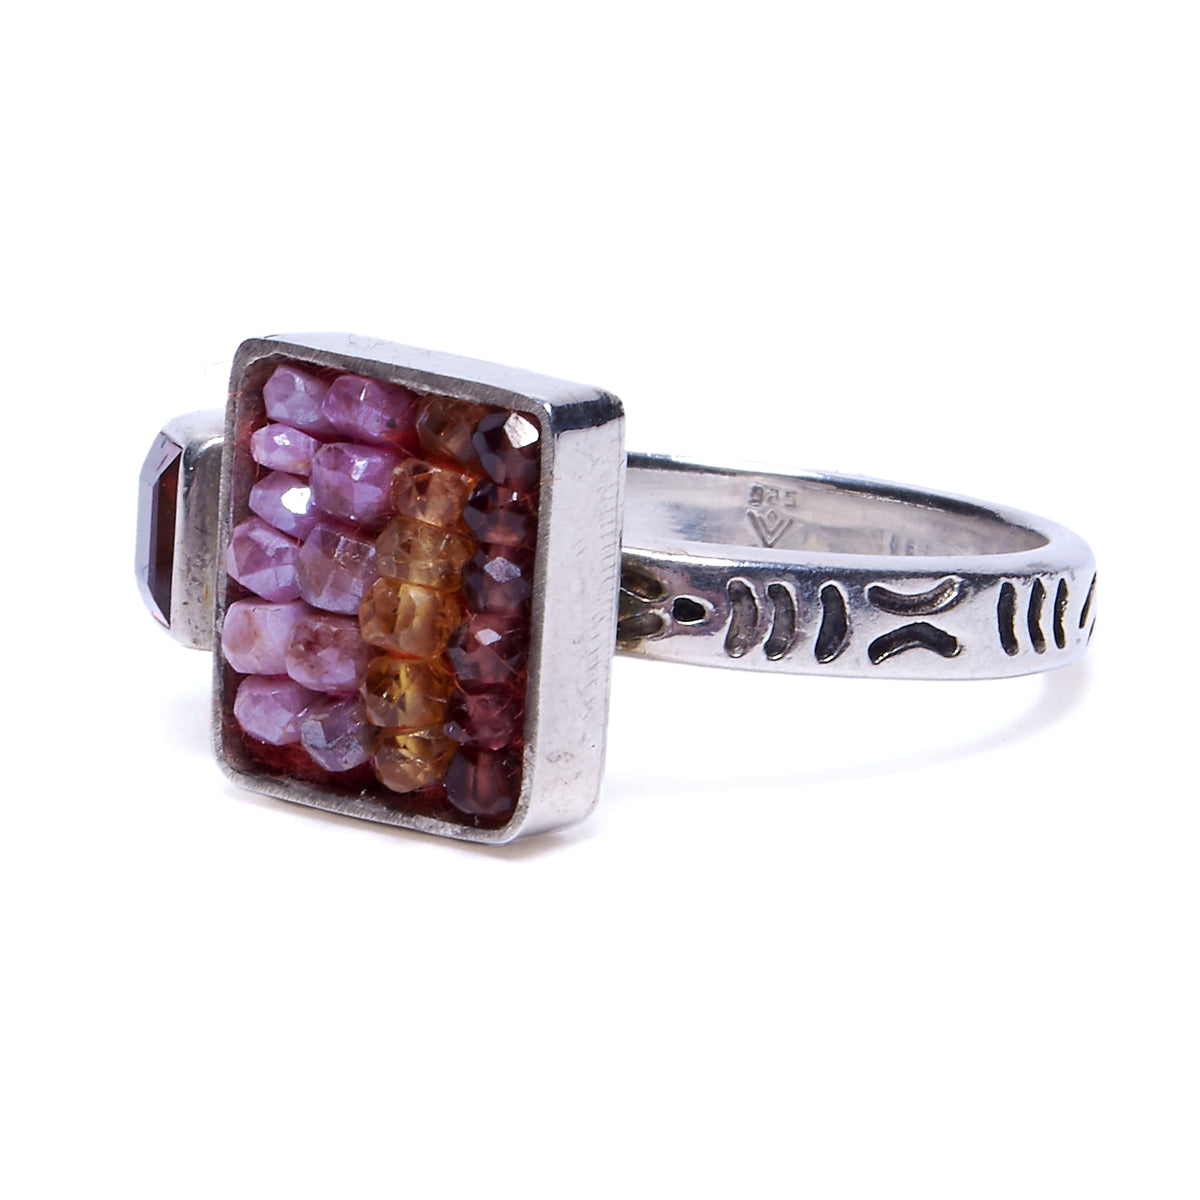 Raspberry and Pumpkin Garnet, with Pink Sapphire Mosaic Ring